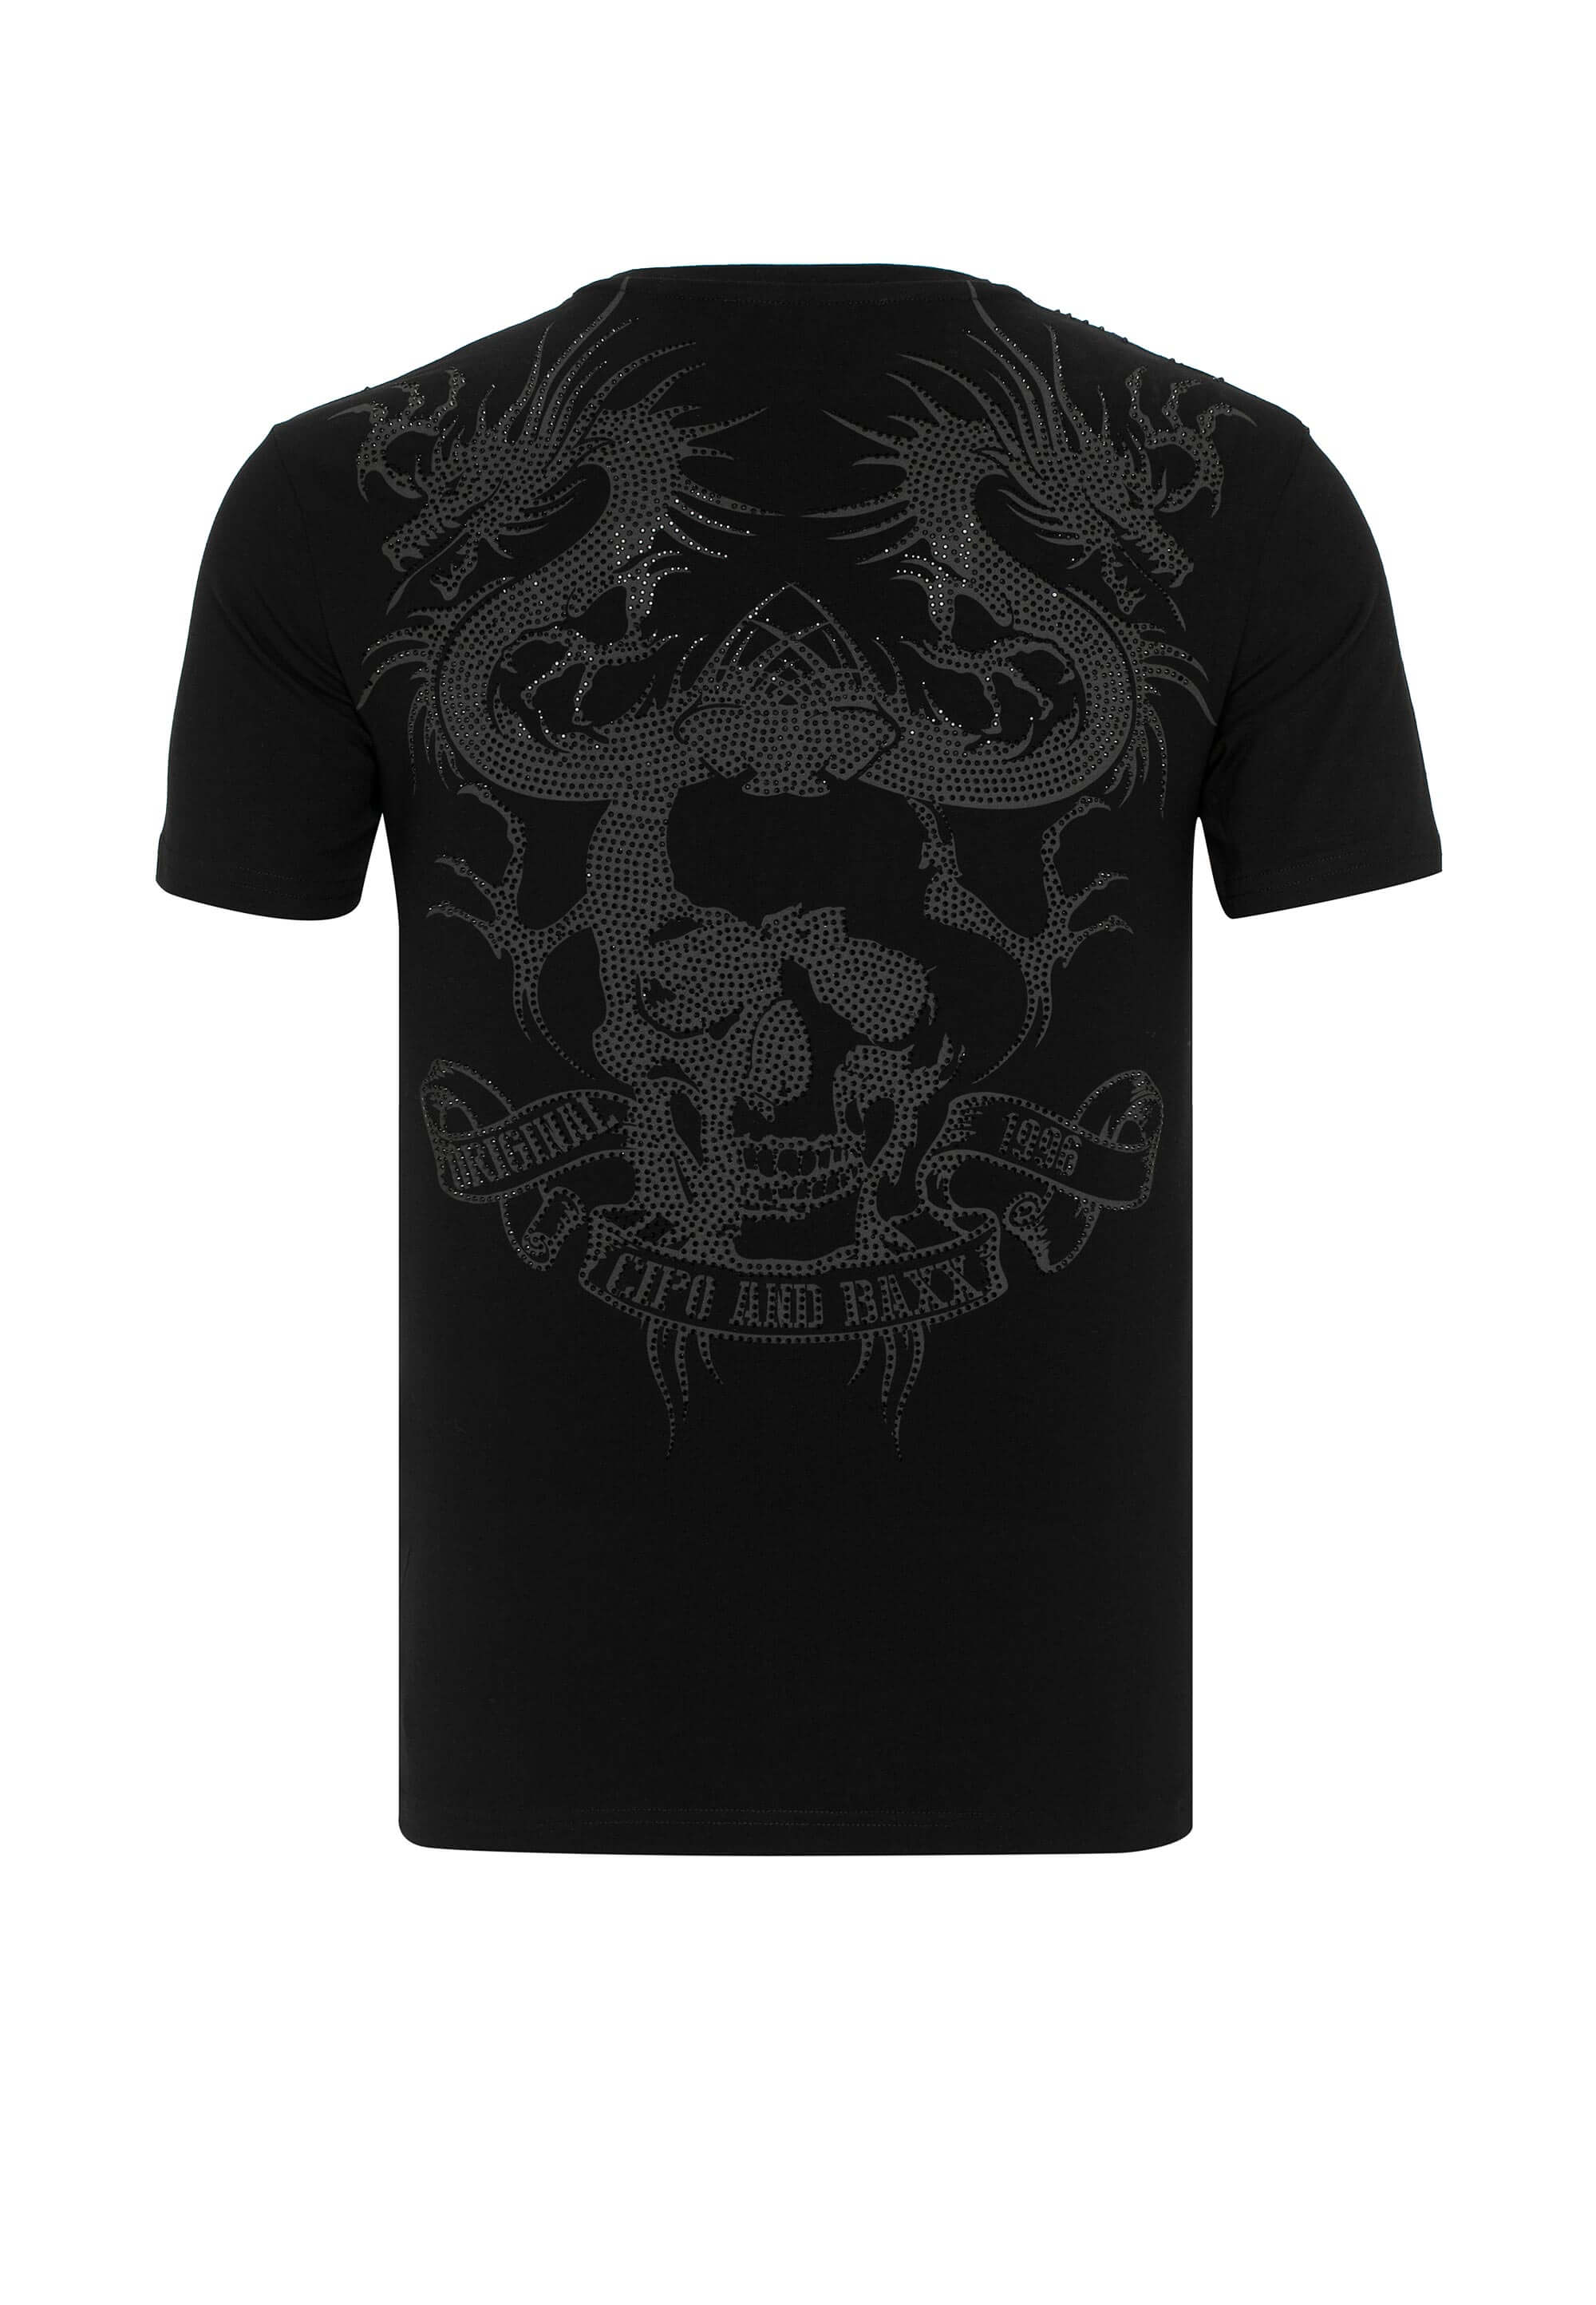 Cipo & Baxx T-Shirt Yakuza Dragon in Black günstig kaufen